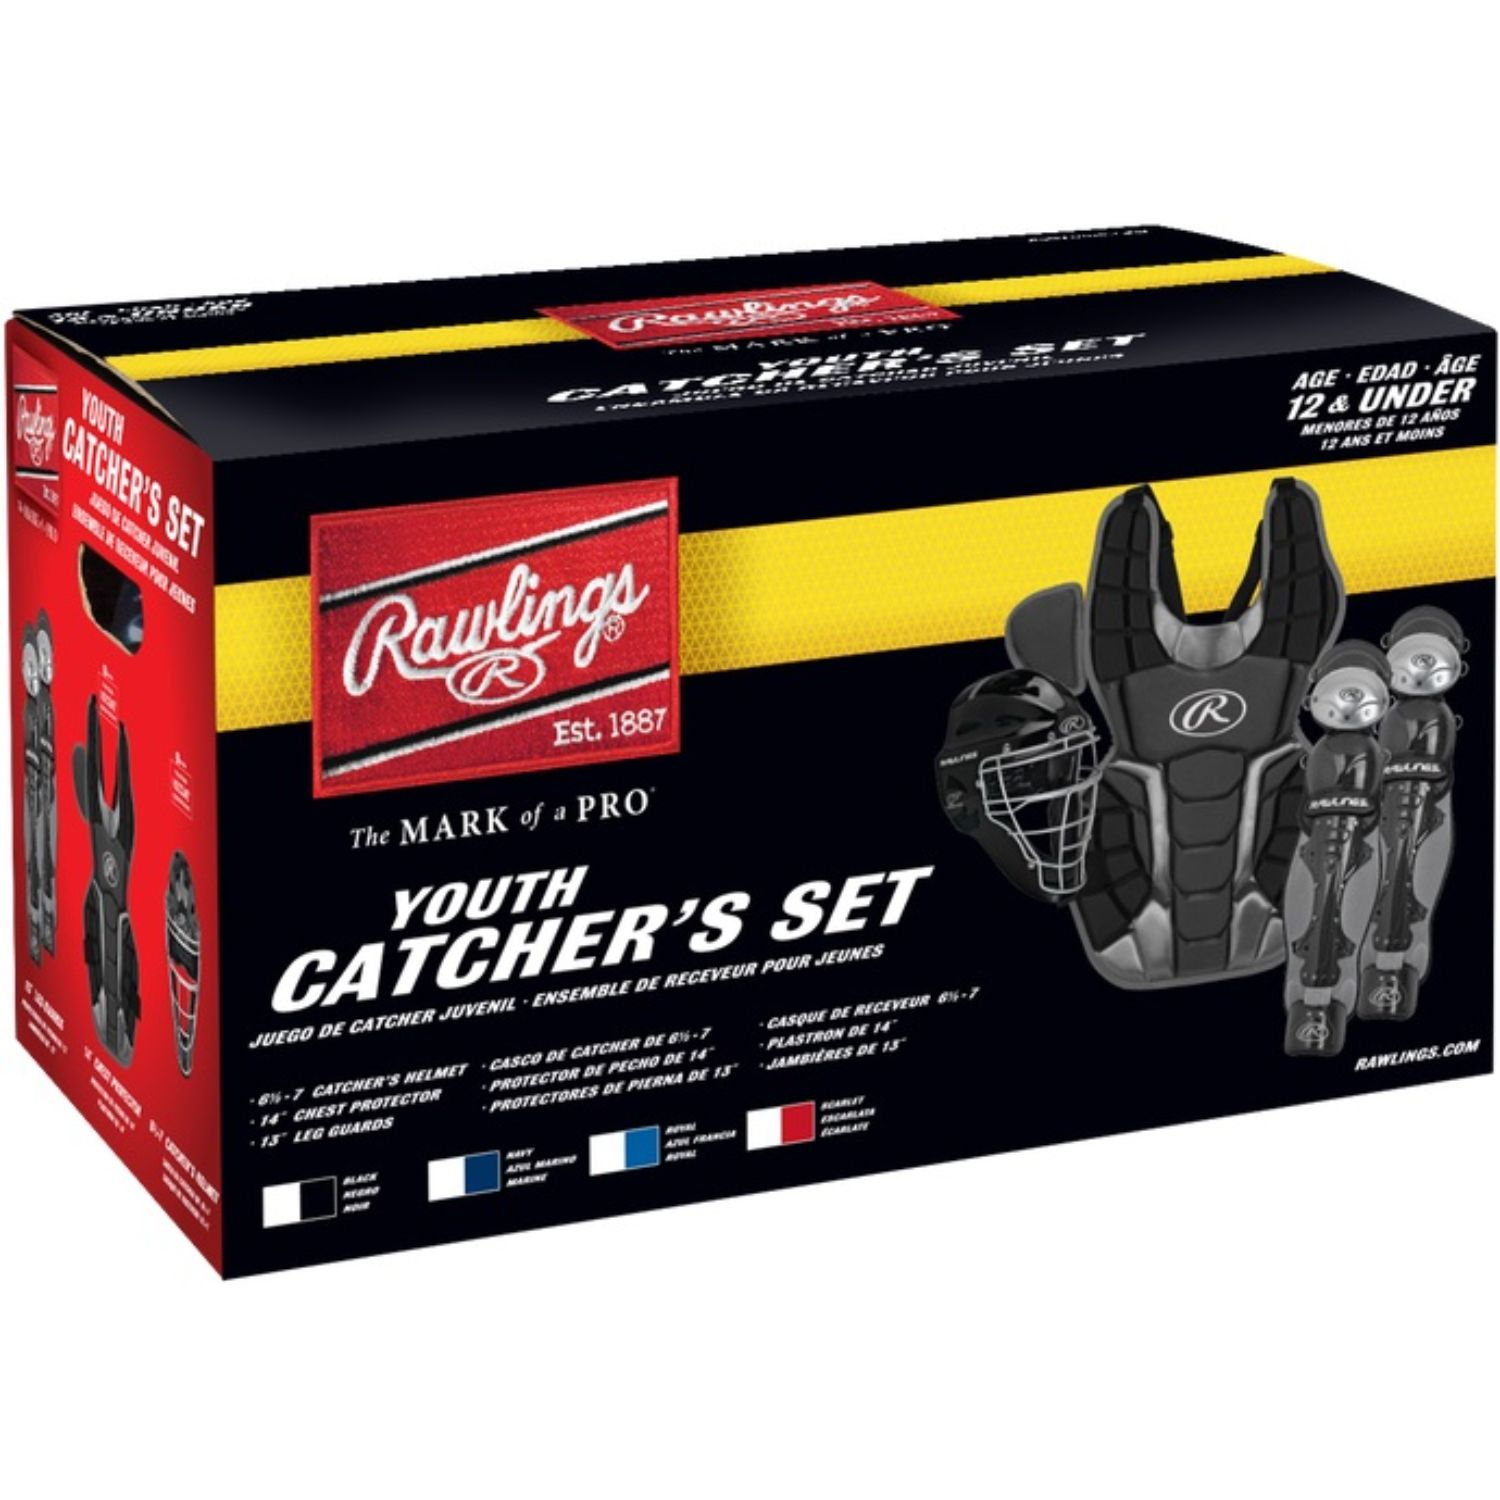 Rawlings Renegade Youth Catchers Set Ages 12 and Under